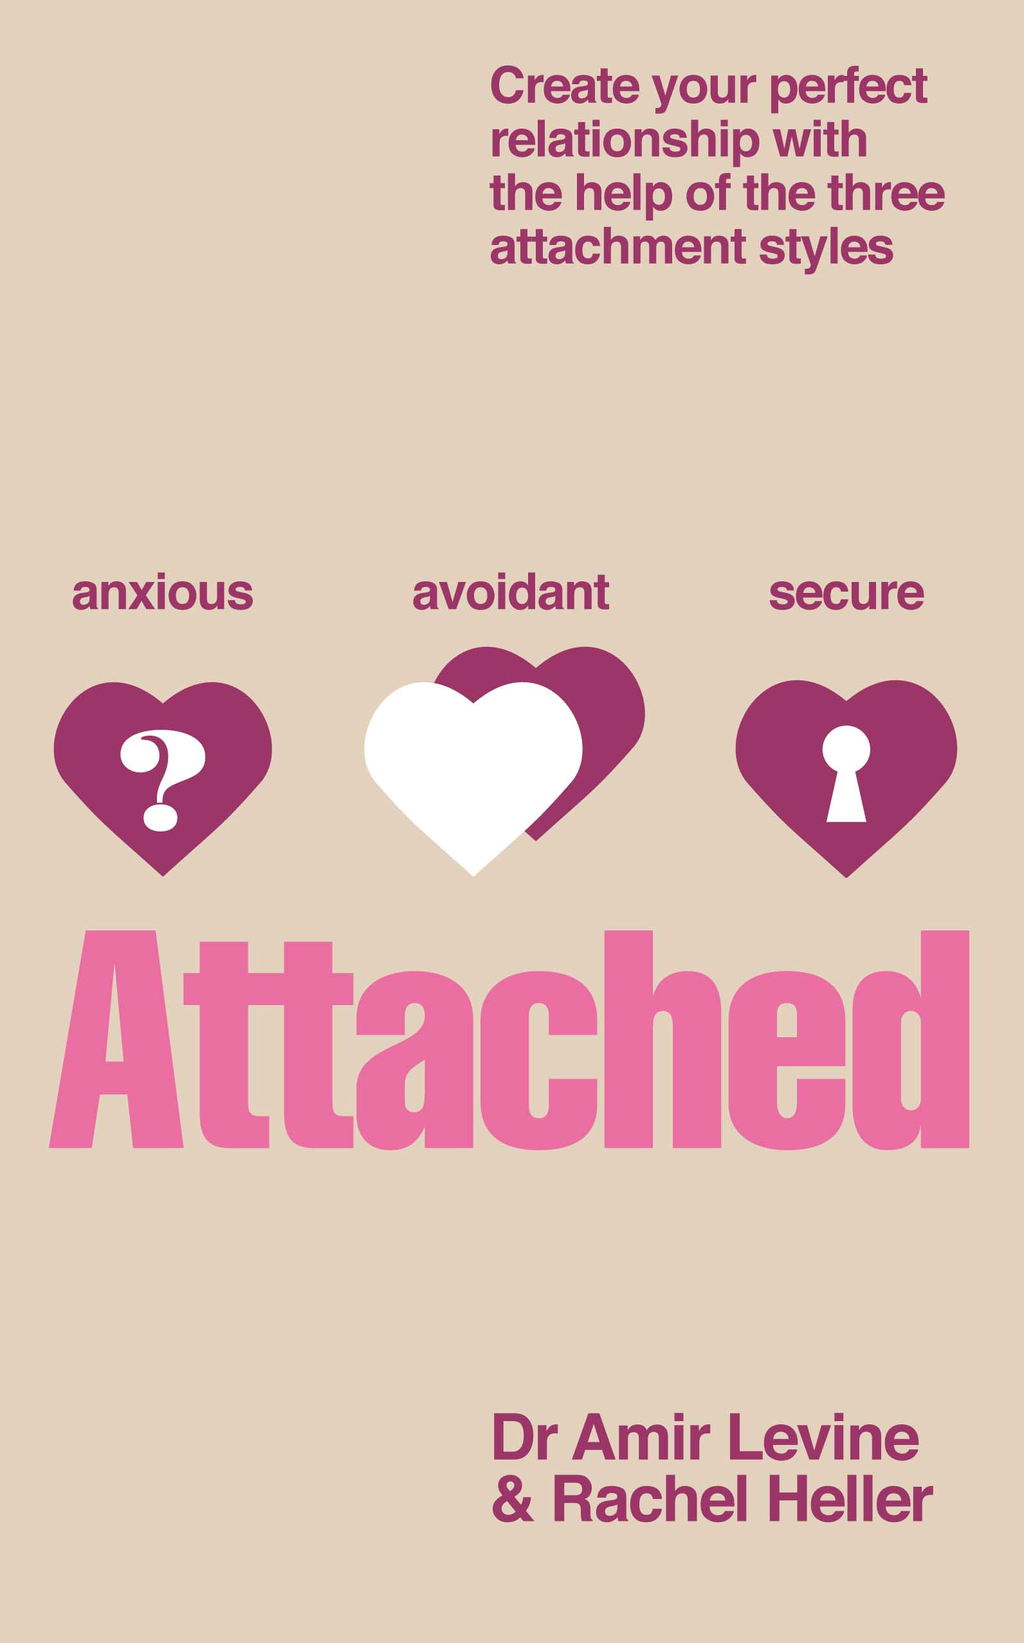 Attached Identify your attachment style and find your perfect match